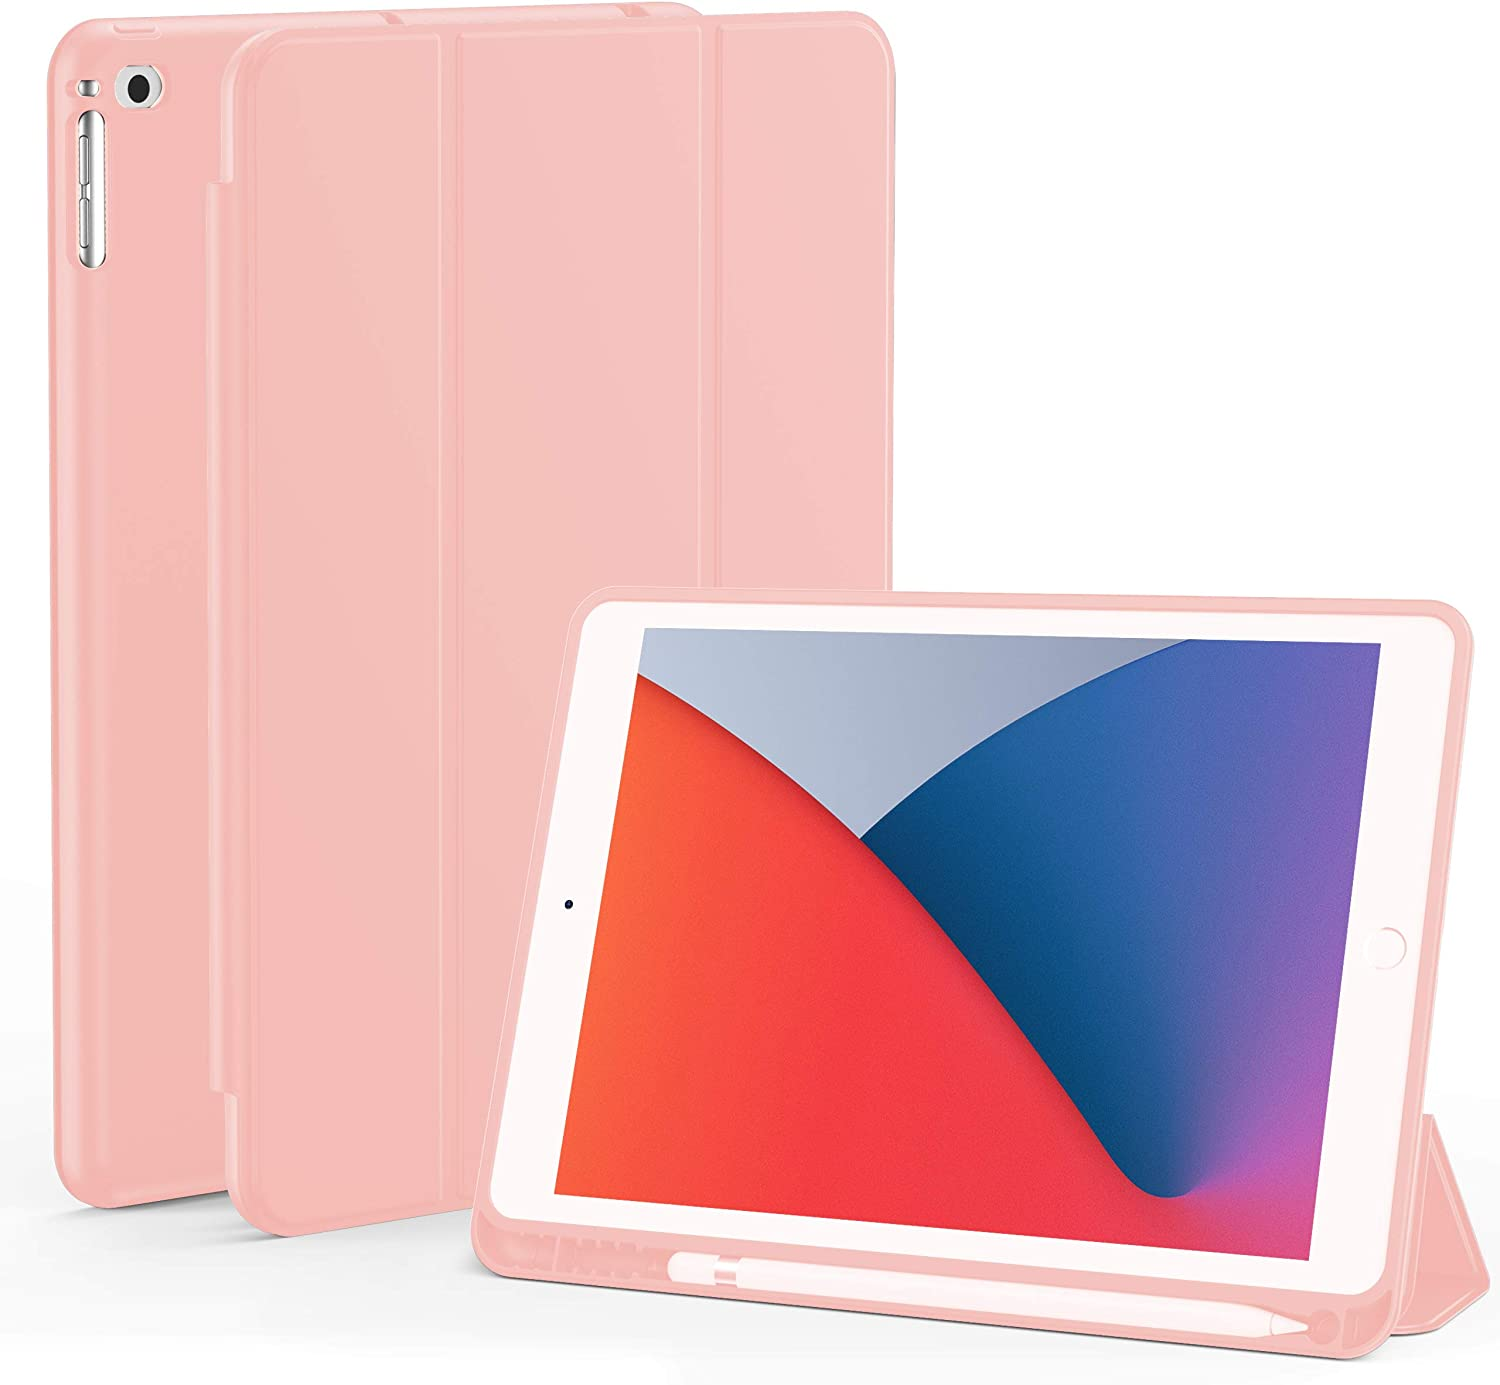 iPad 9.7 (2018 & 2017) / iPad Air 2 / iPad Air Case, Slim Stand Protective Folio Case Smart Cover with Pencil Holder for iPad 9.7 Inch 5th/6th Generation, Also Fit iPad Air 2 / iPad Air (Pink)